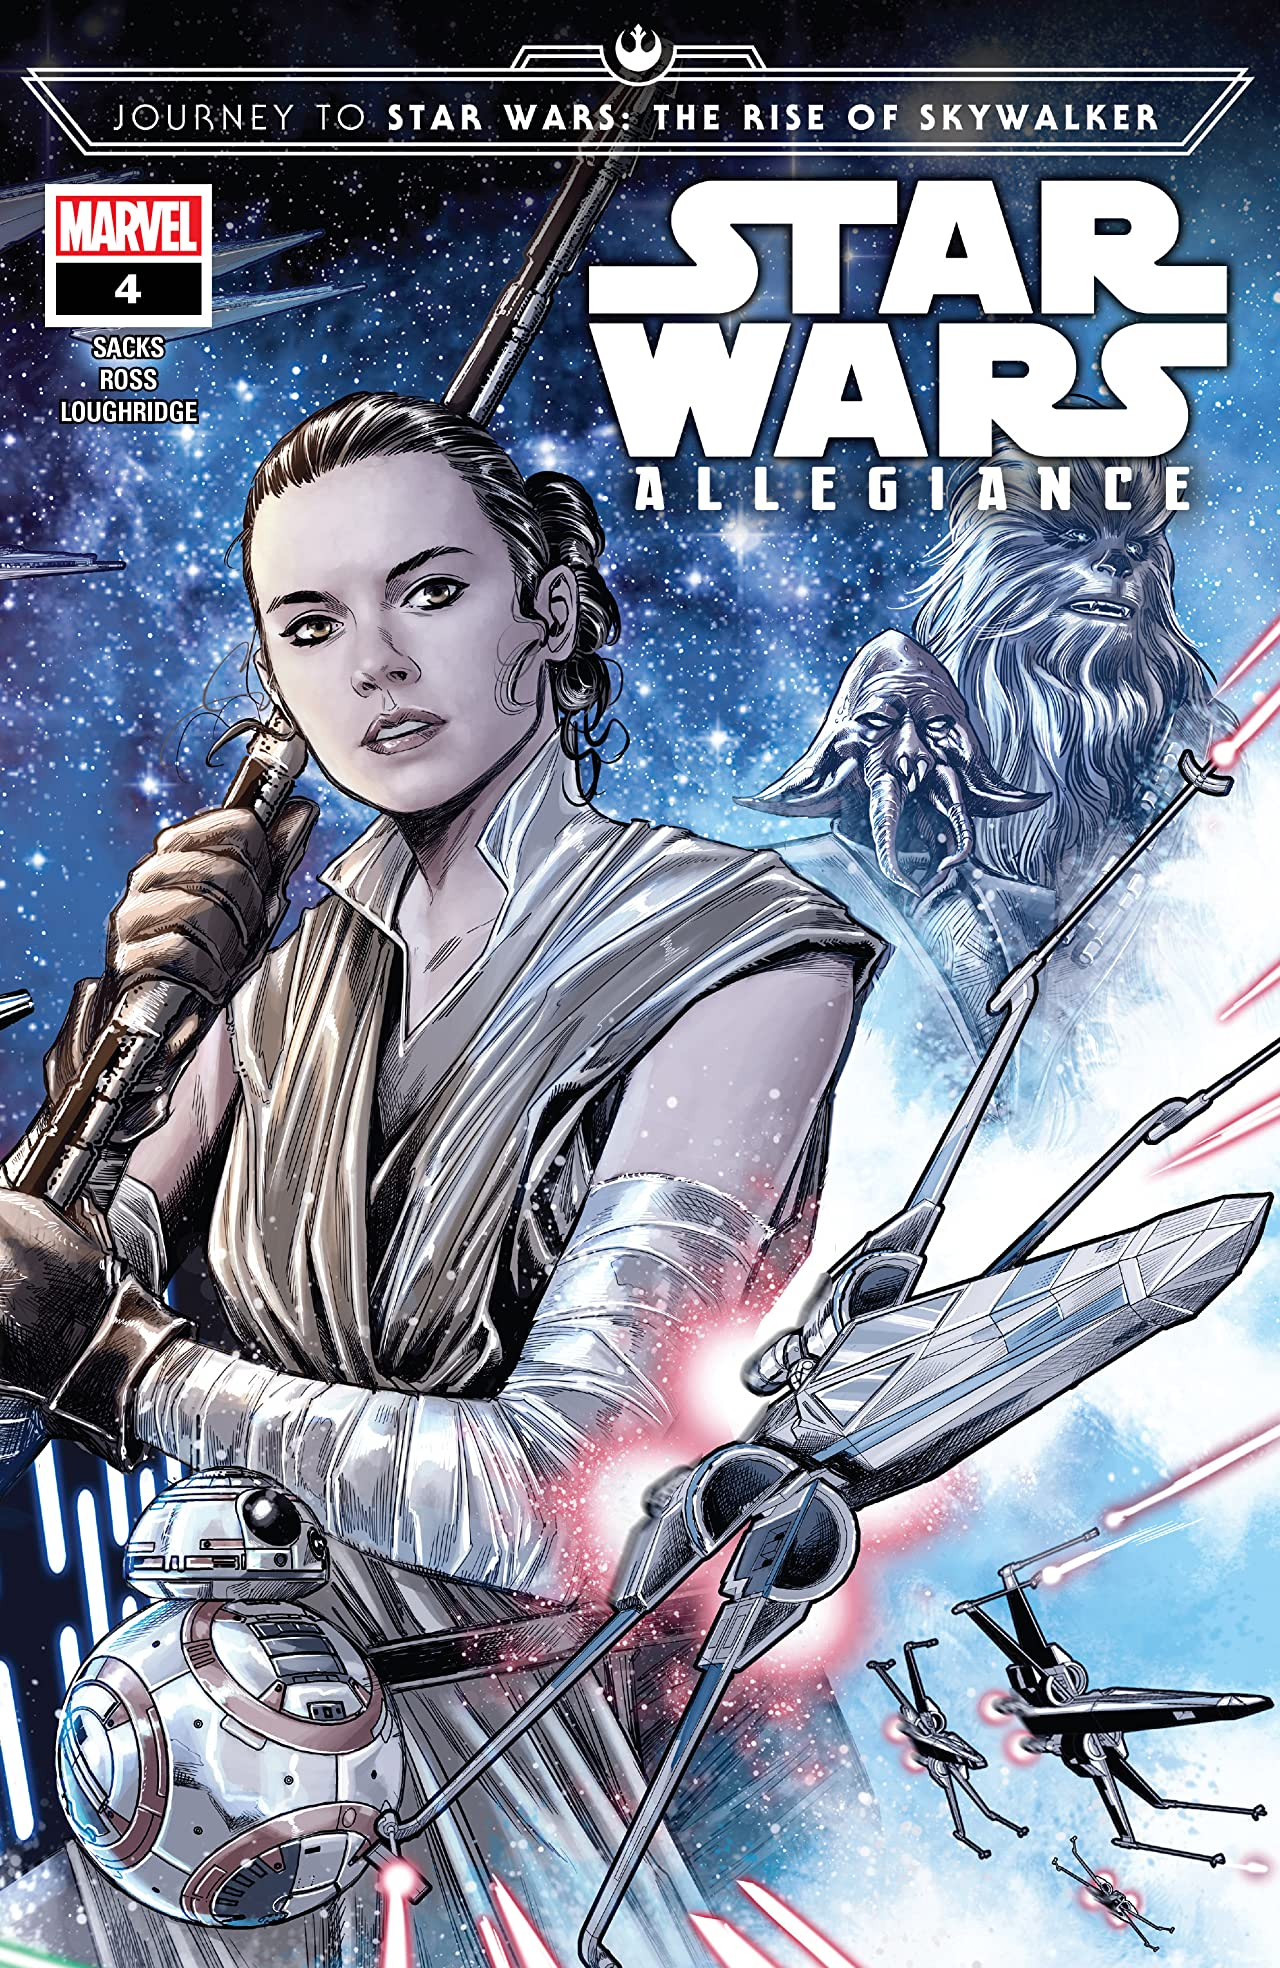 Journey To Star Wars: The Rise Of Skywalker - Allegiance (2019) #4 (of 4)